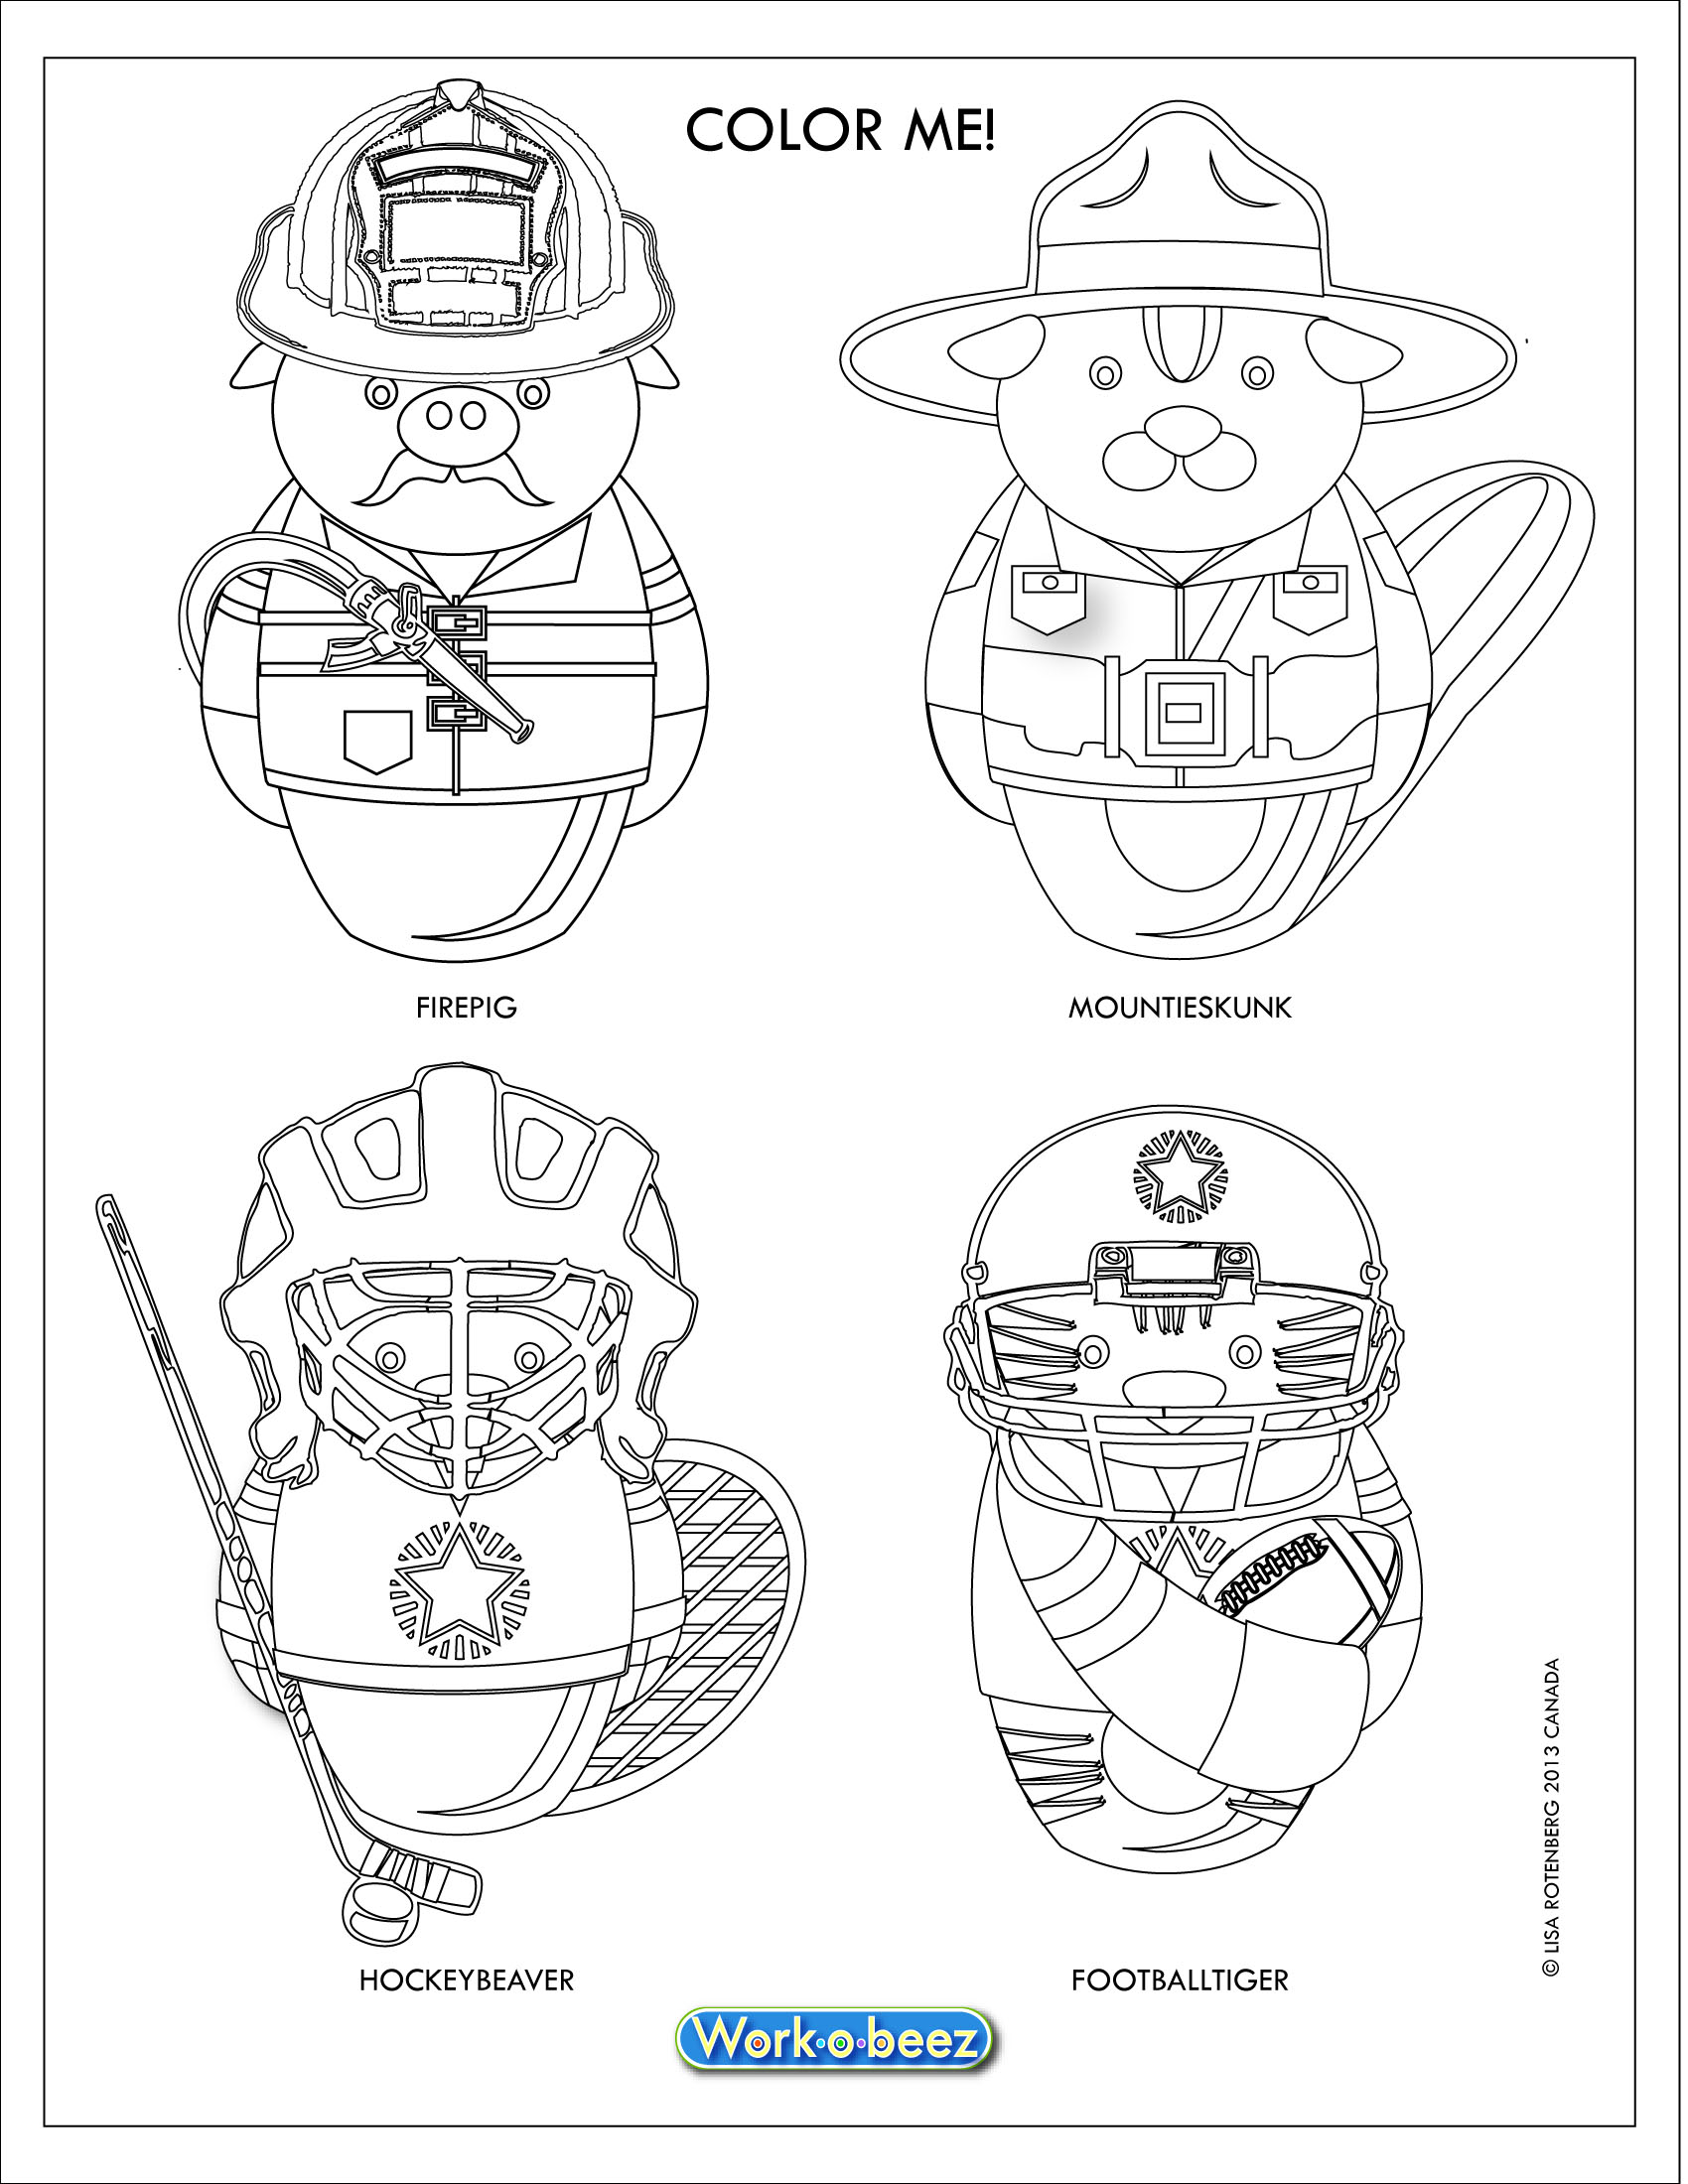 work o beez modular character designs are an innovative modern and fun set of figures for use in licenced products such as stickers coloring pages